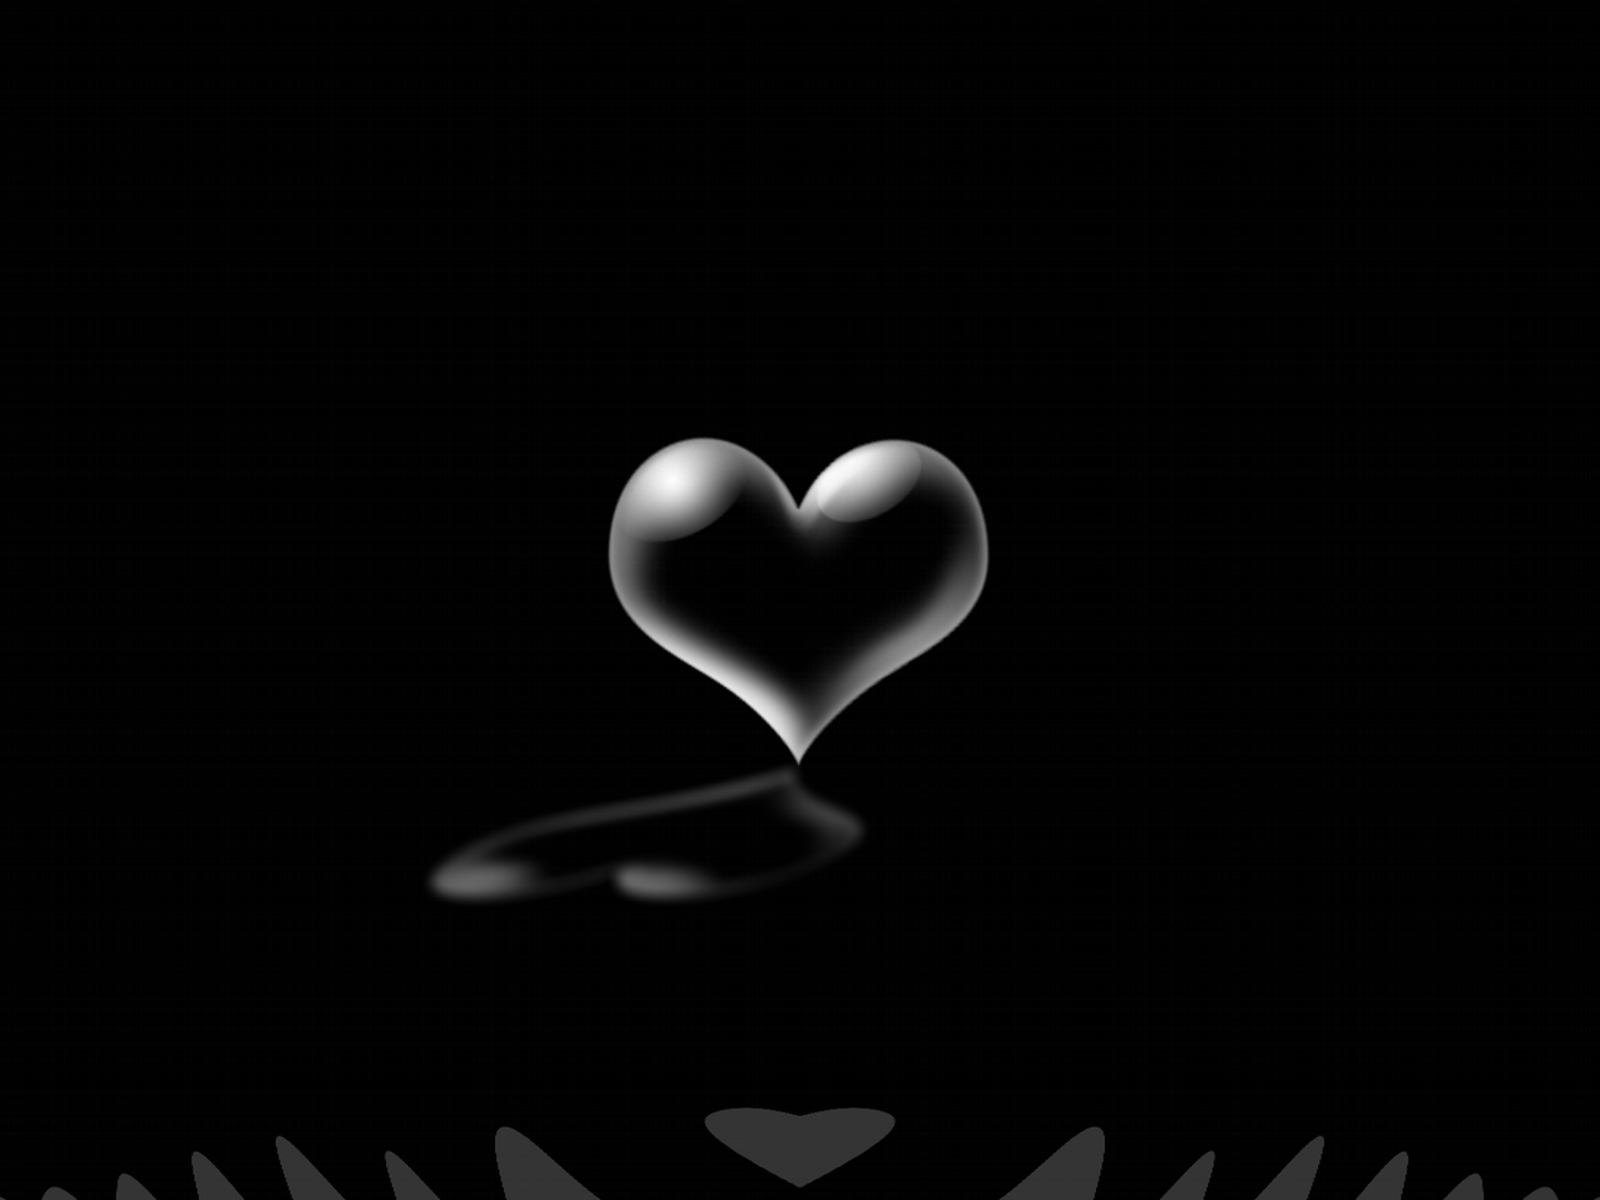 Black heart black wallpaper